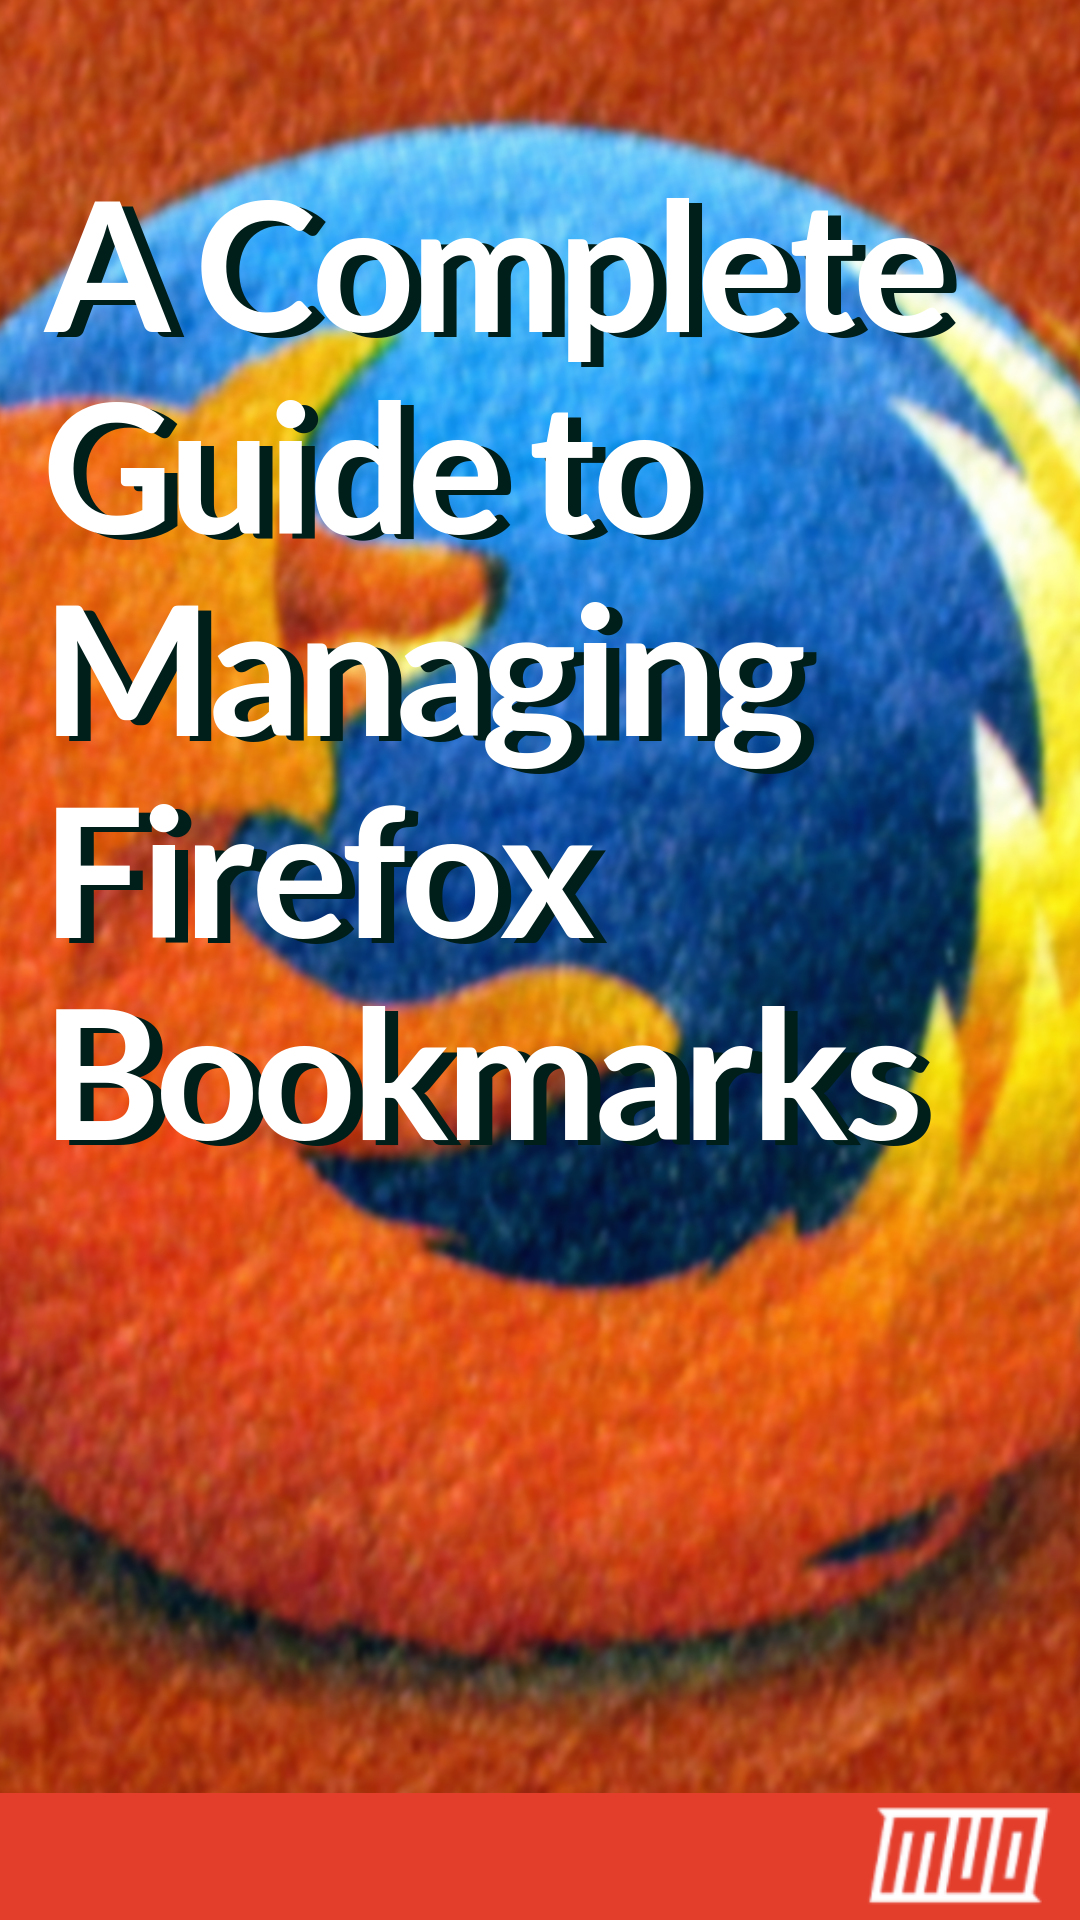 A Complete Guide to Managing Firefox Bookmarks | Tech Tips